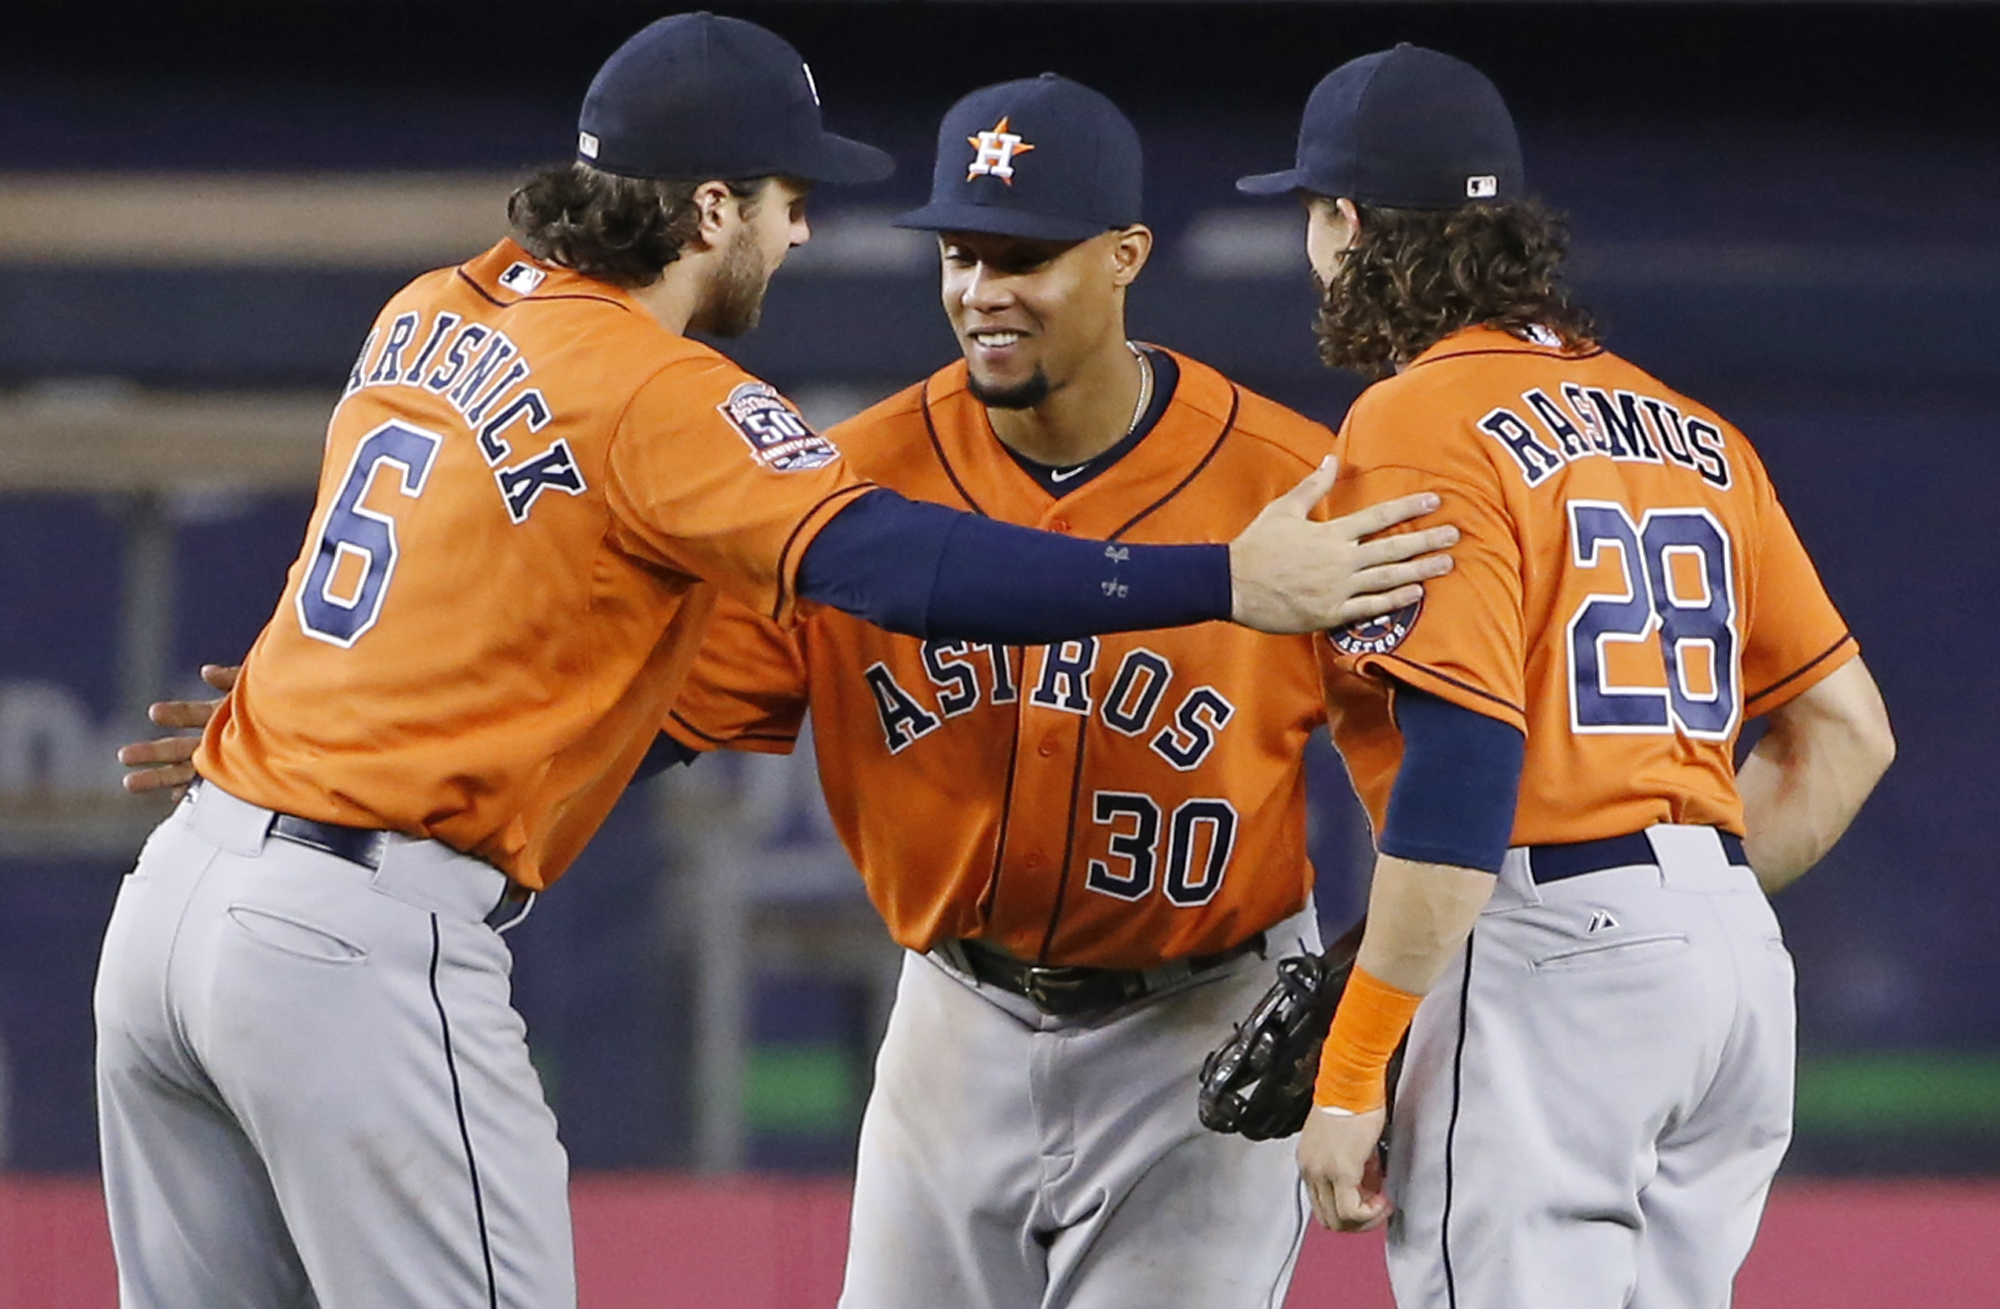 Houston Astros left fielder Jake Marisnick (6) congratulates center fielder Carlos Gomez (30) right fielder Colby Rasmus (28) after the Astros' 15-1 victory over the New York Yankees in a baseball game at Yankee Stadium in New York, Tuesday, Aug. 25, 2015